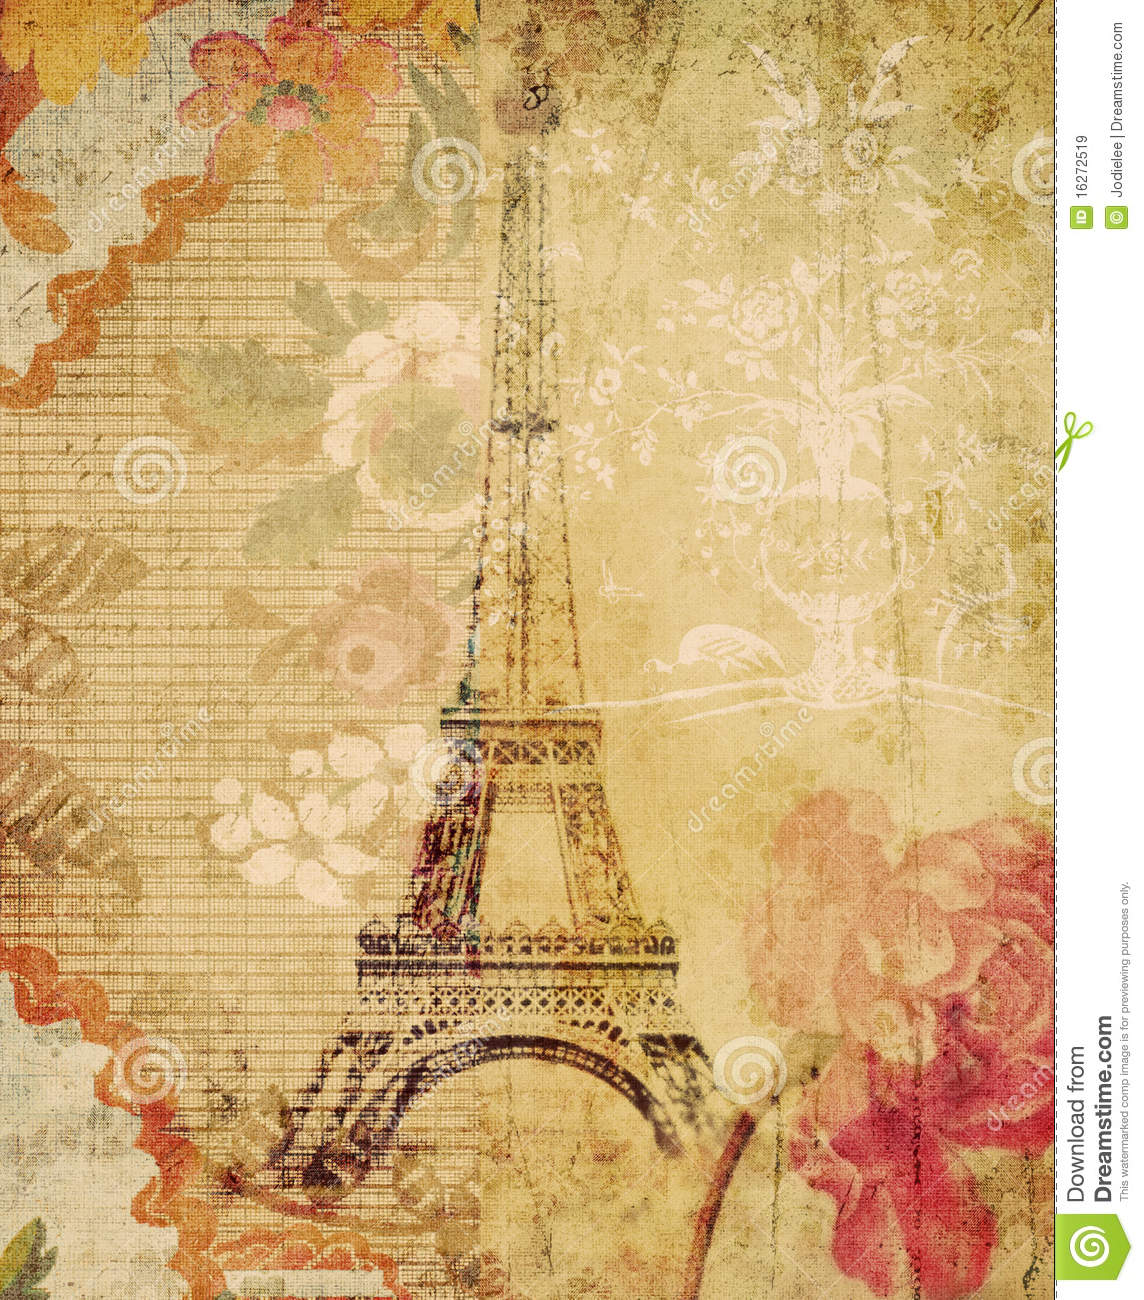 grungy-floral-eiffel-tower-paris-background-16272519 Map Eiffel Tower Area on travel area map, eiffel tower paris map, everest area map, shopping area map, eiffel tower local map, la manche france map, beach area map, seattle space needle area map, san diego convention center area map, eiffel tower site map, paris area map, iguazu falls area map, cairo area map, city area map, horse area map, golden gate bridge san francisco map, statue of liberty area map, coliseum area map, alps area map, eiffel tower district map,